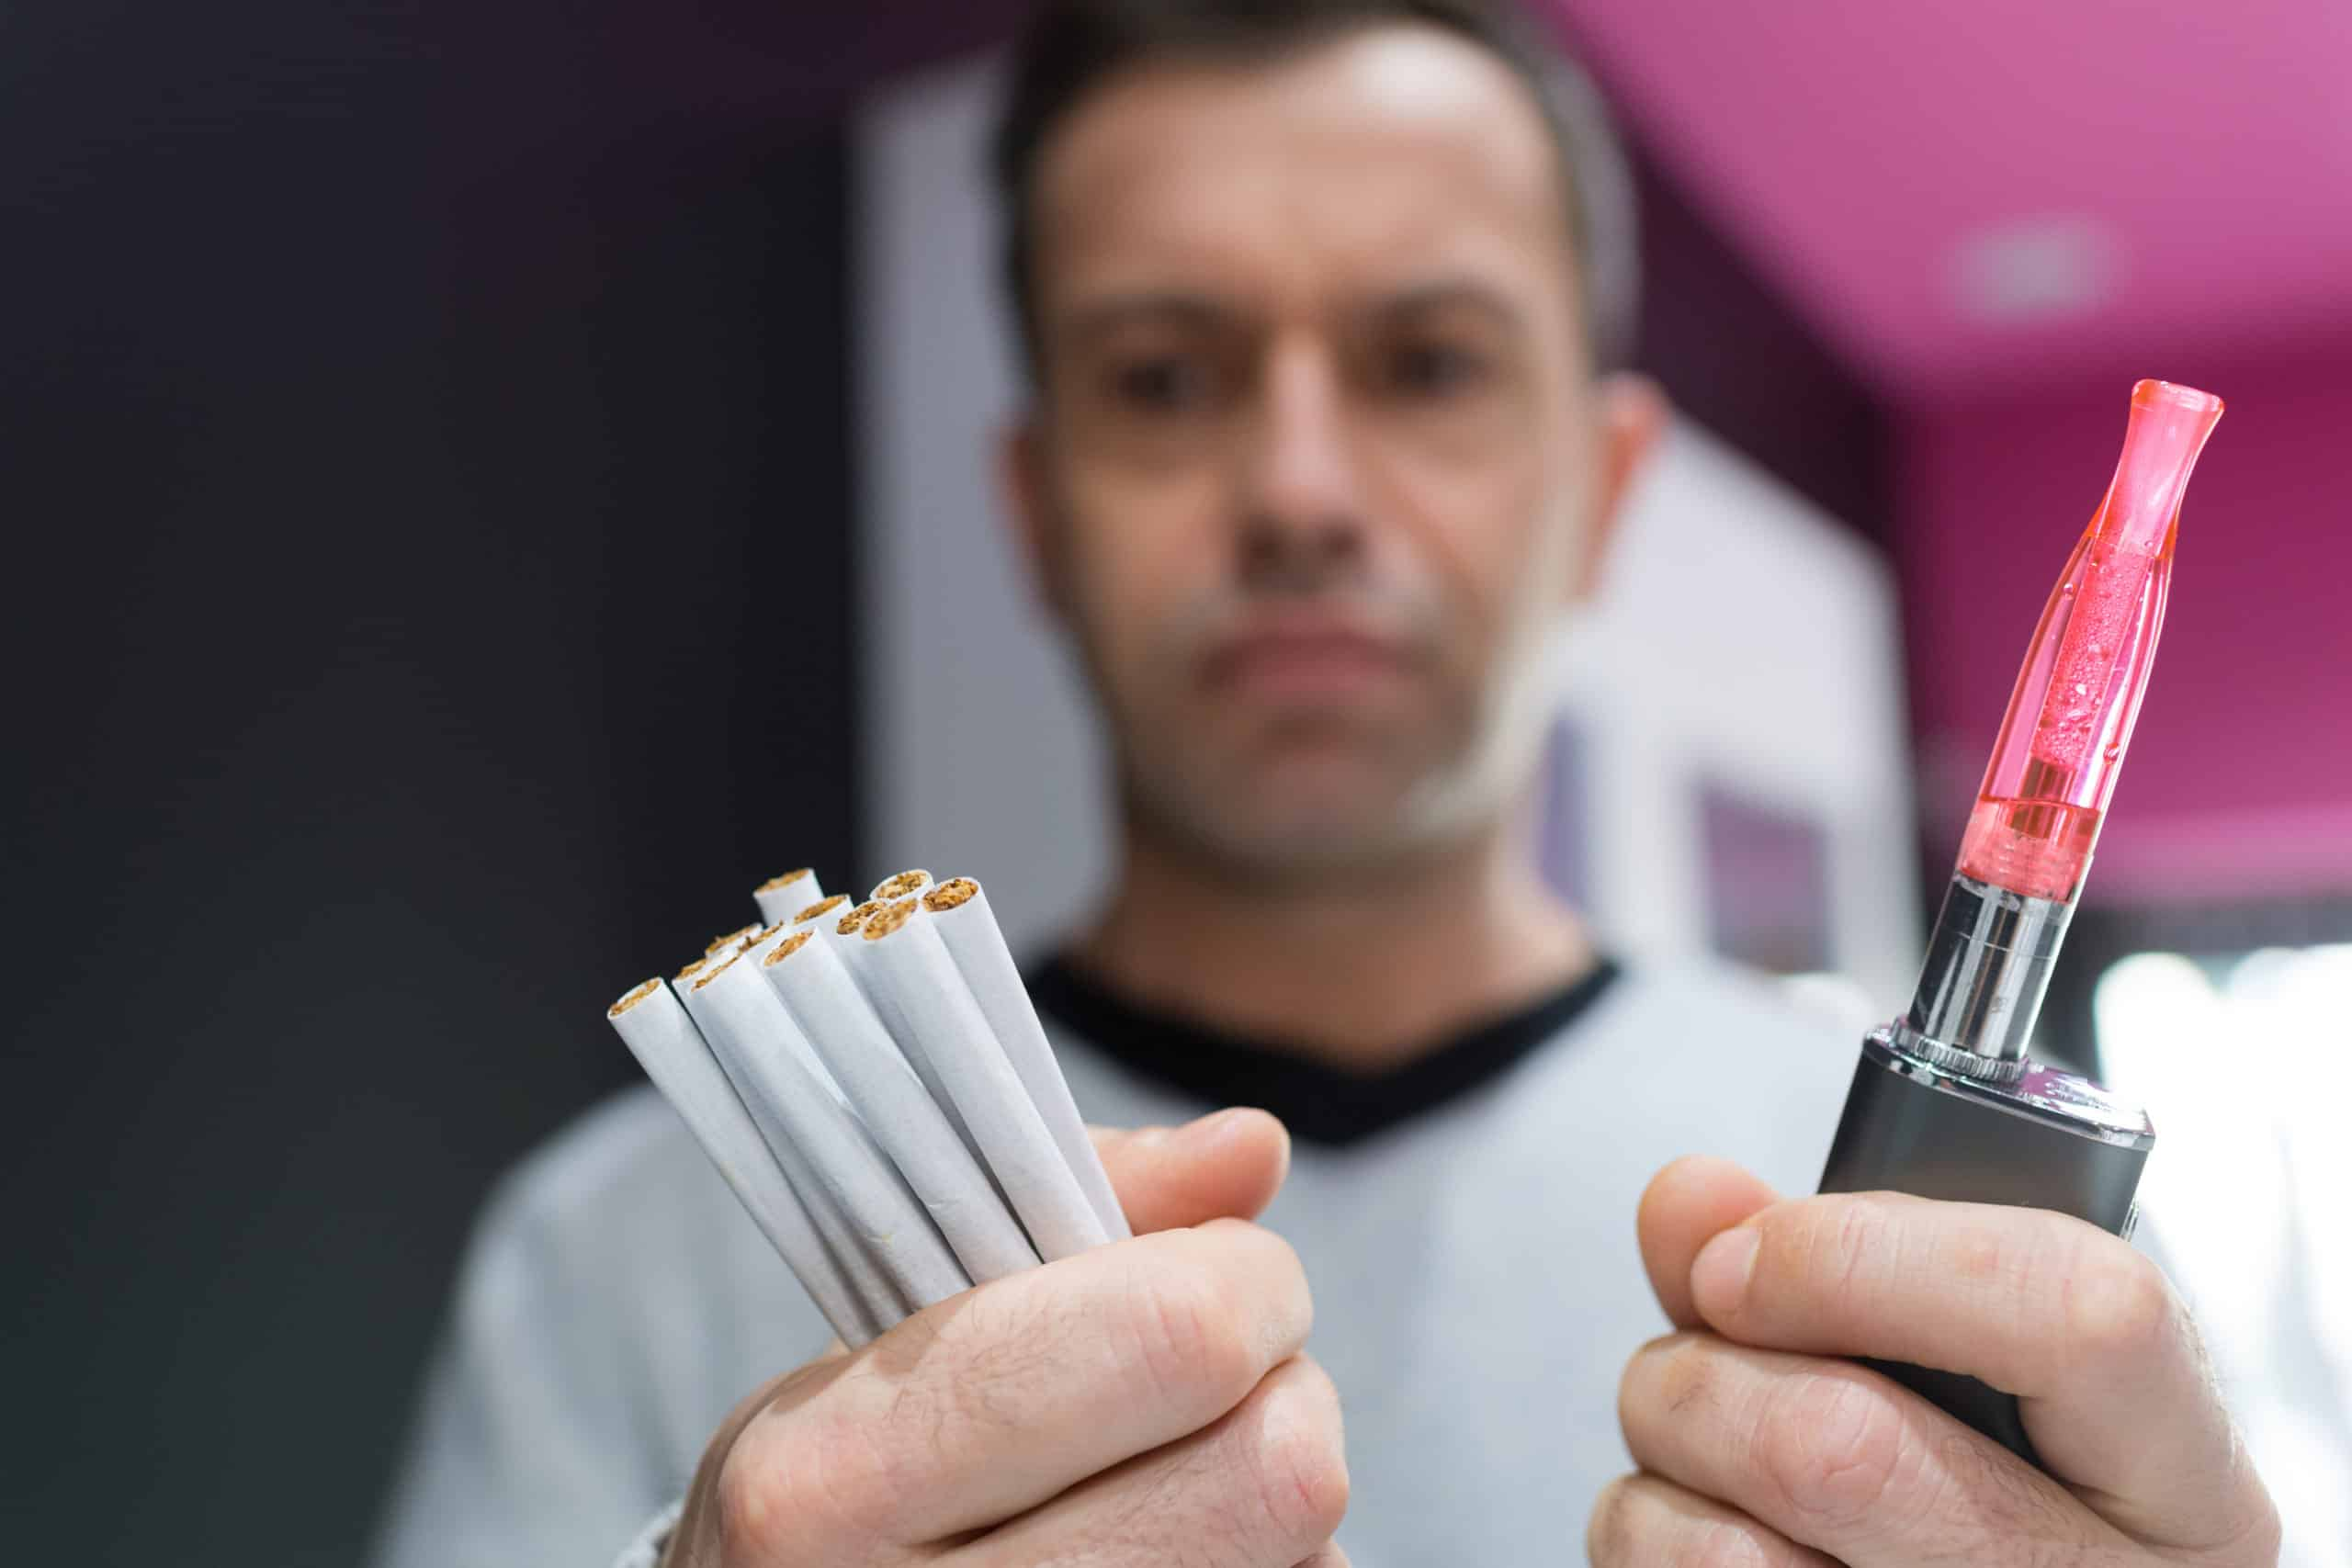 Adult man chooses between cigarettes and vape device.